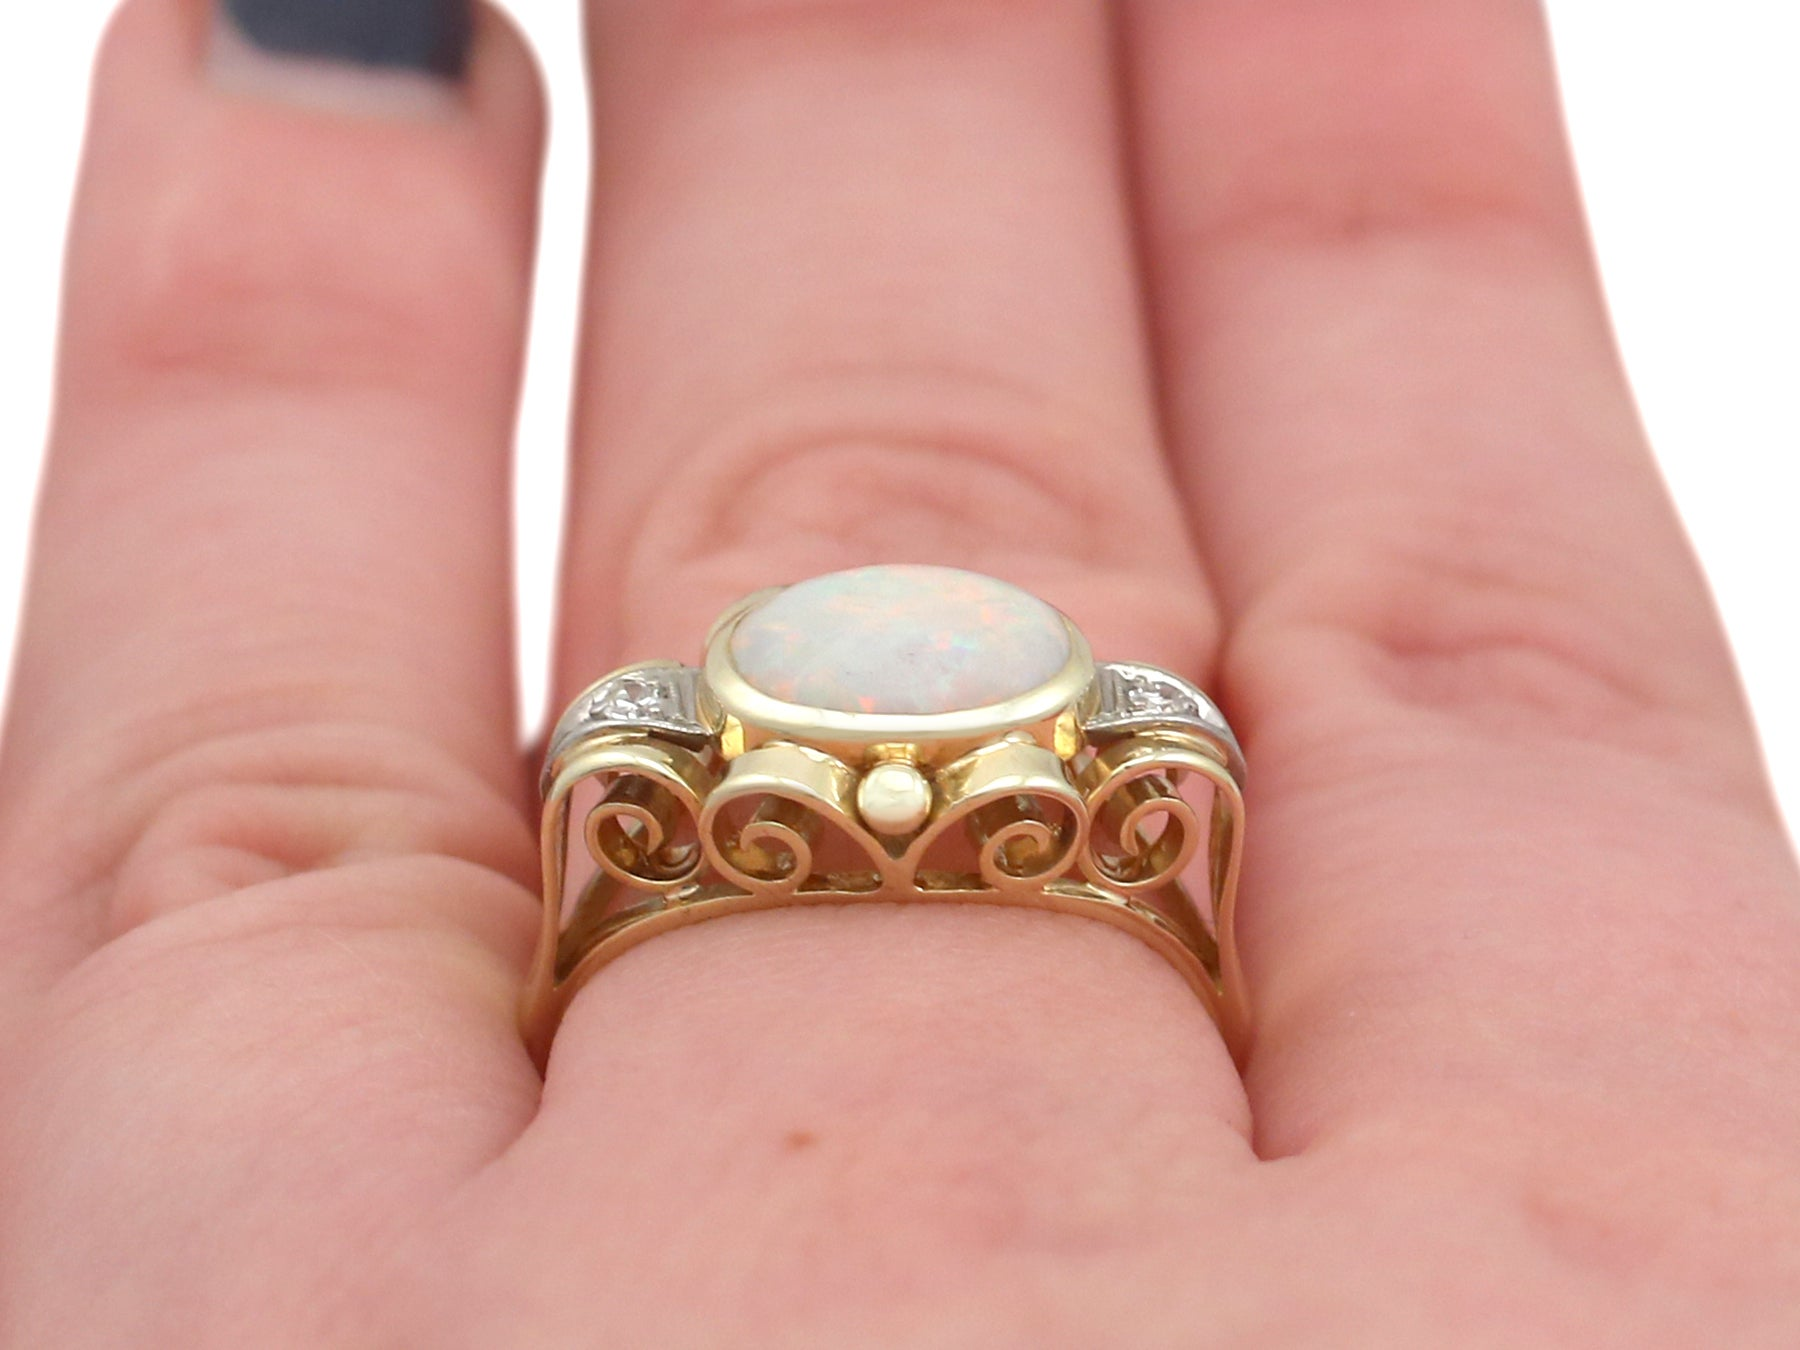 1940s Opal and Diamond Yellow Gold Dress Ring For Sale at 1stdibs